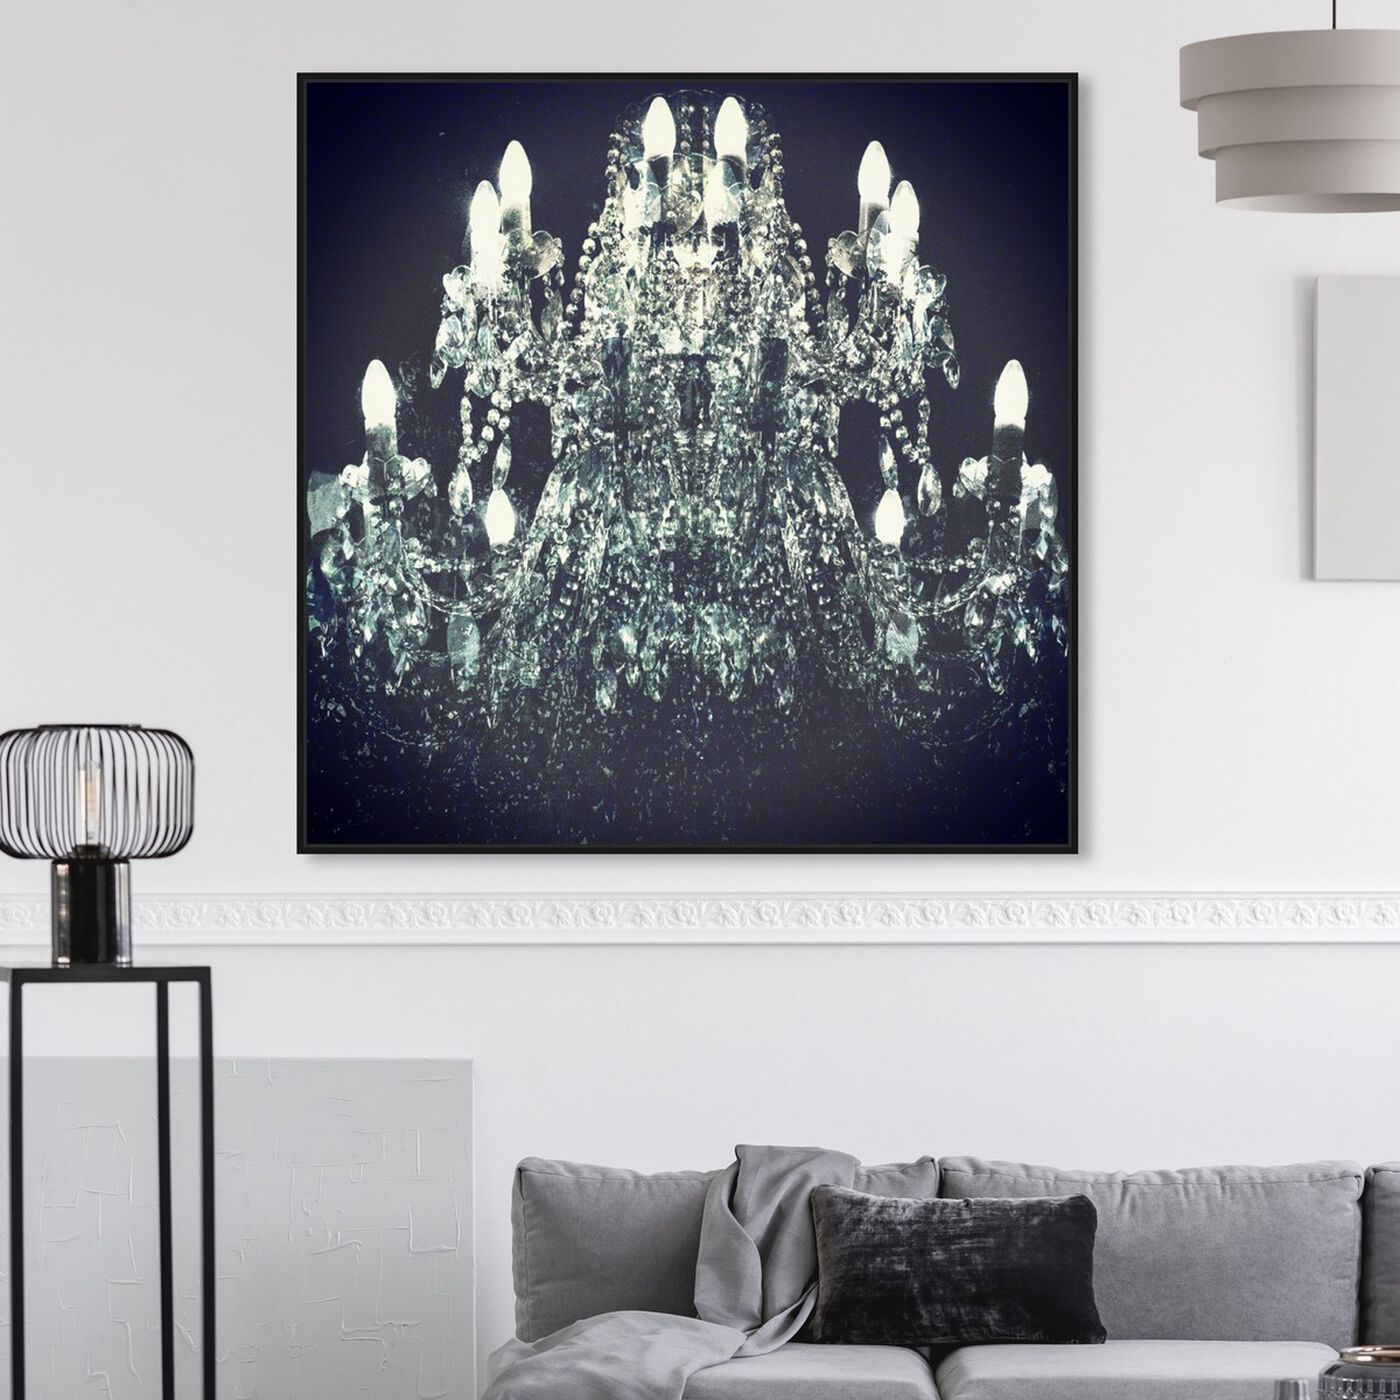 Hanging view of Orfeo's Dream featuring fashion and glam and chandeliers art.